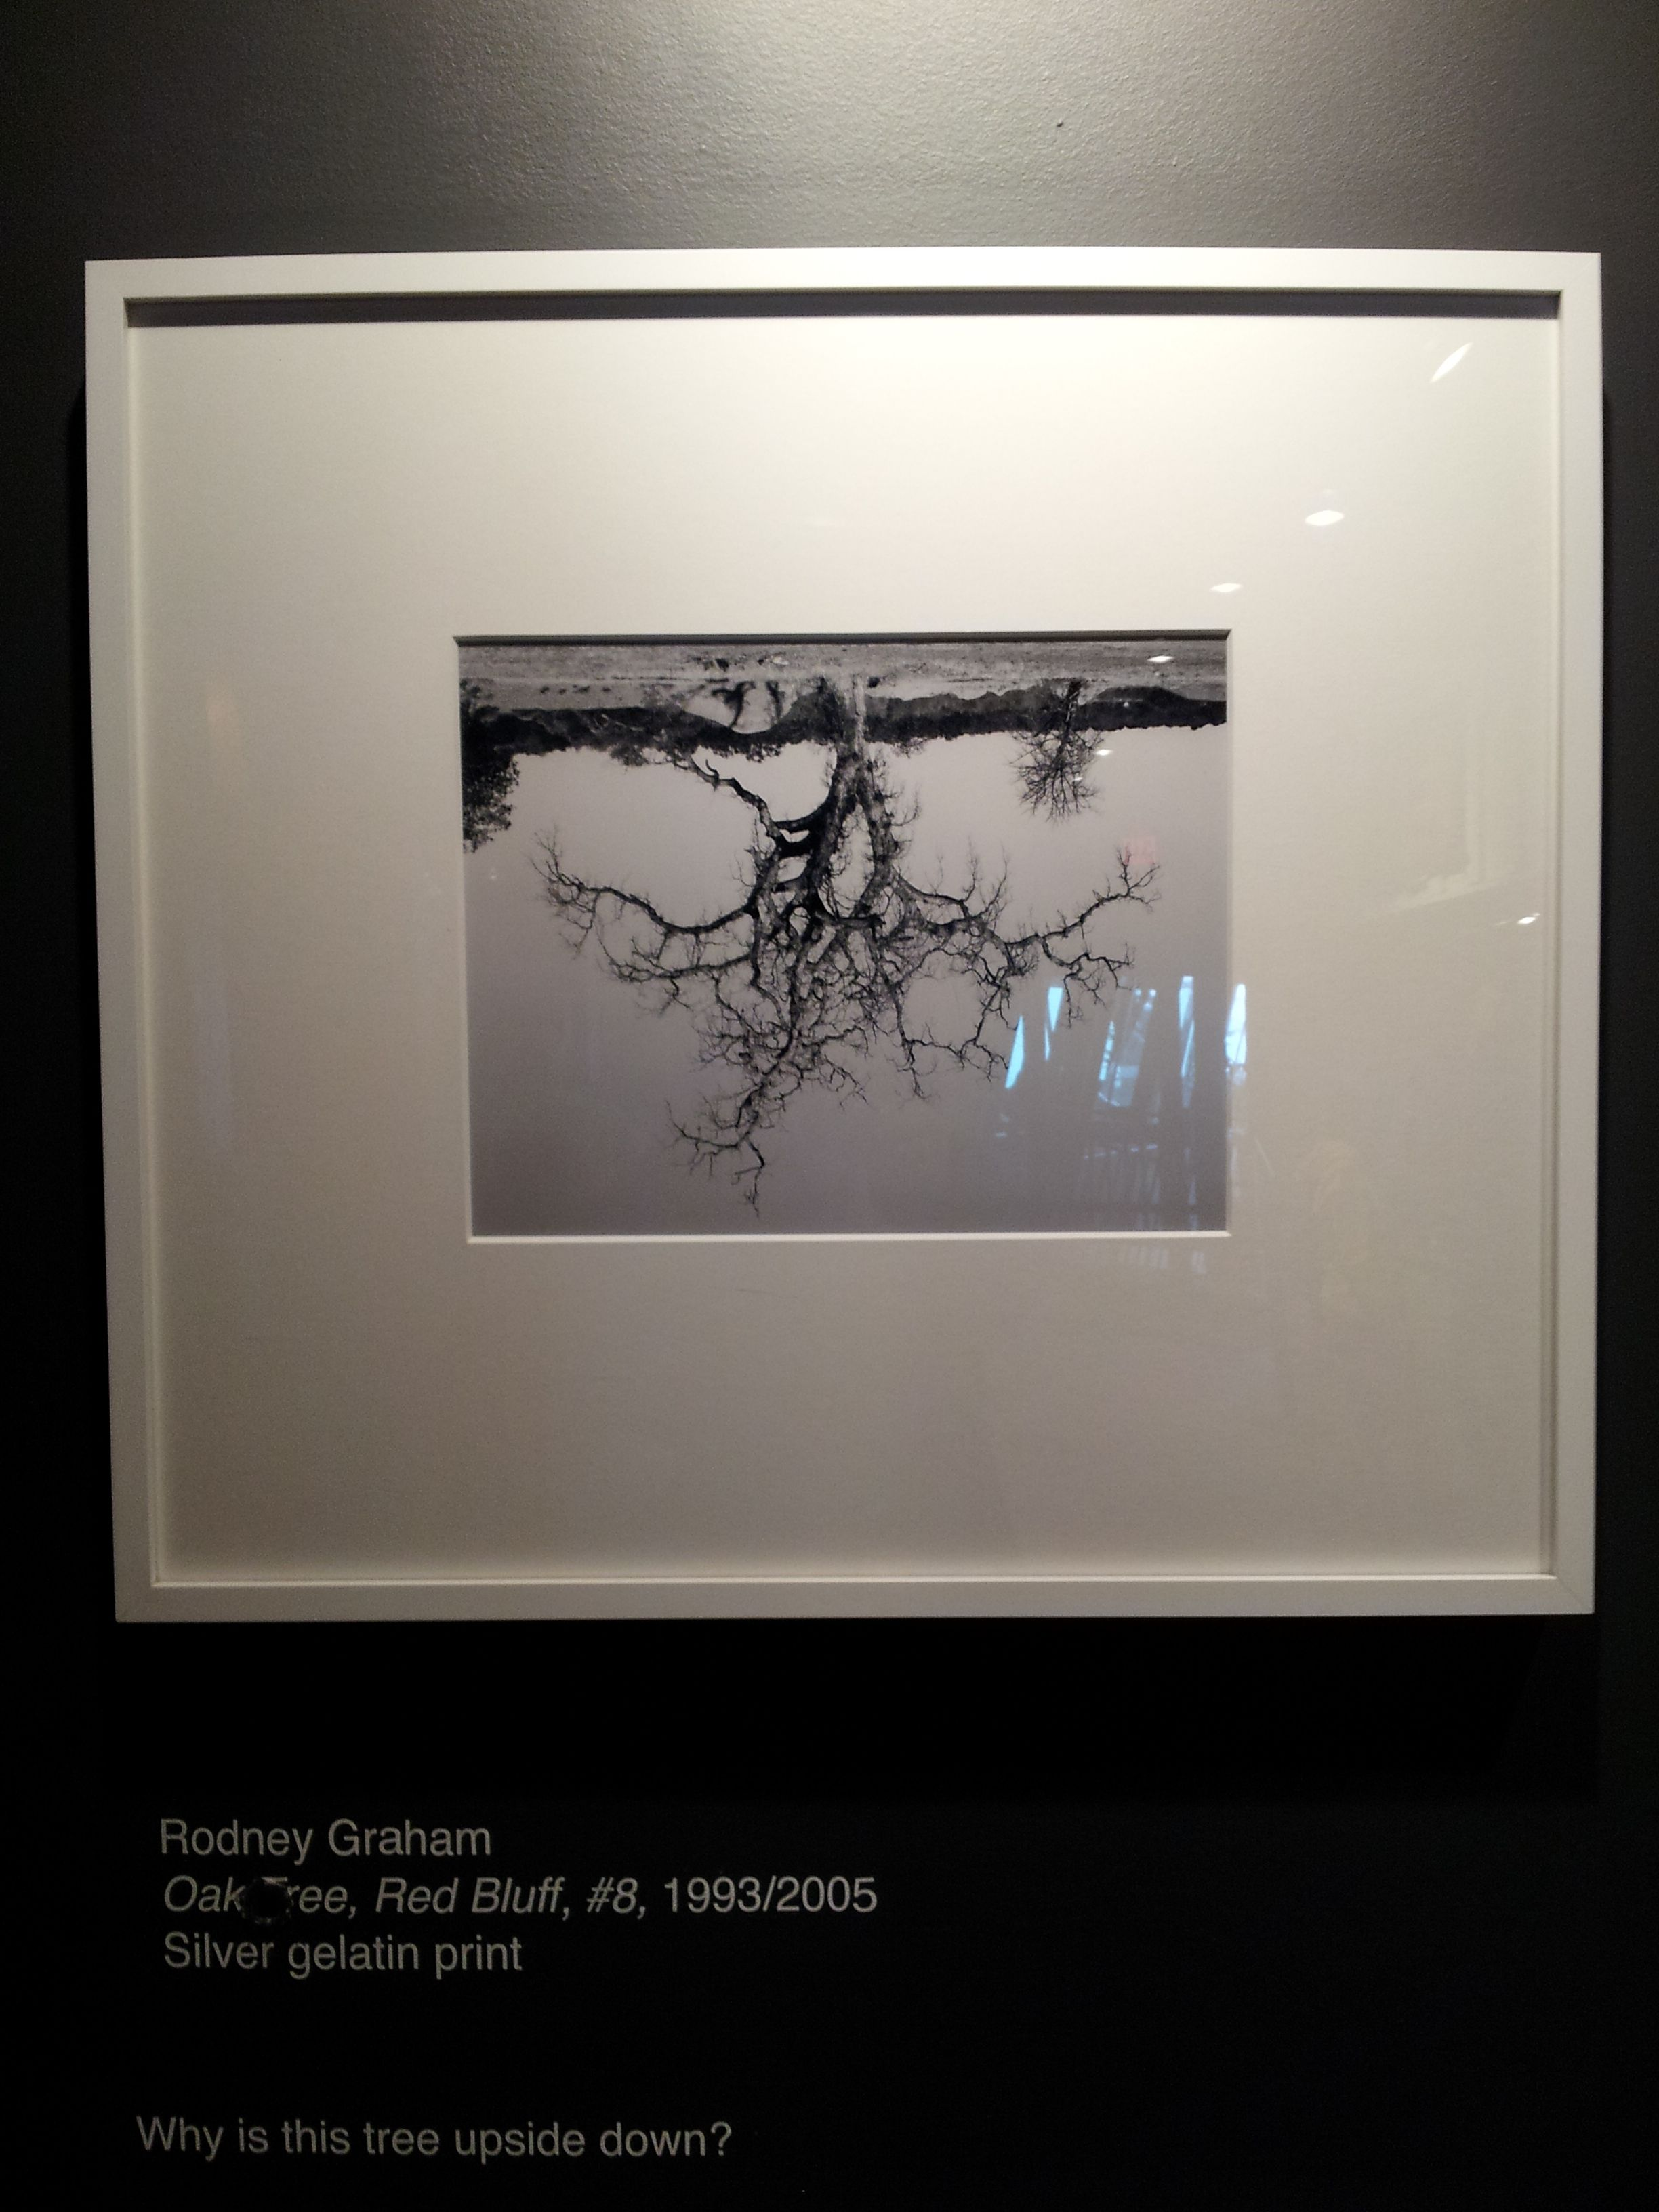 Oak Tree, Red Bluff 8 by Rodney Graham. Why is this tree